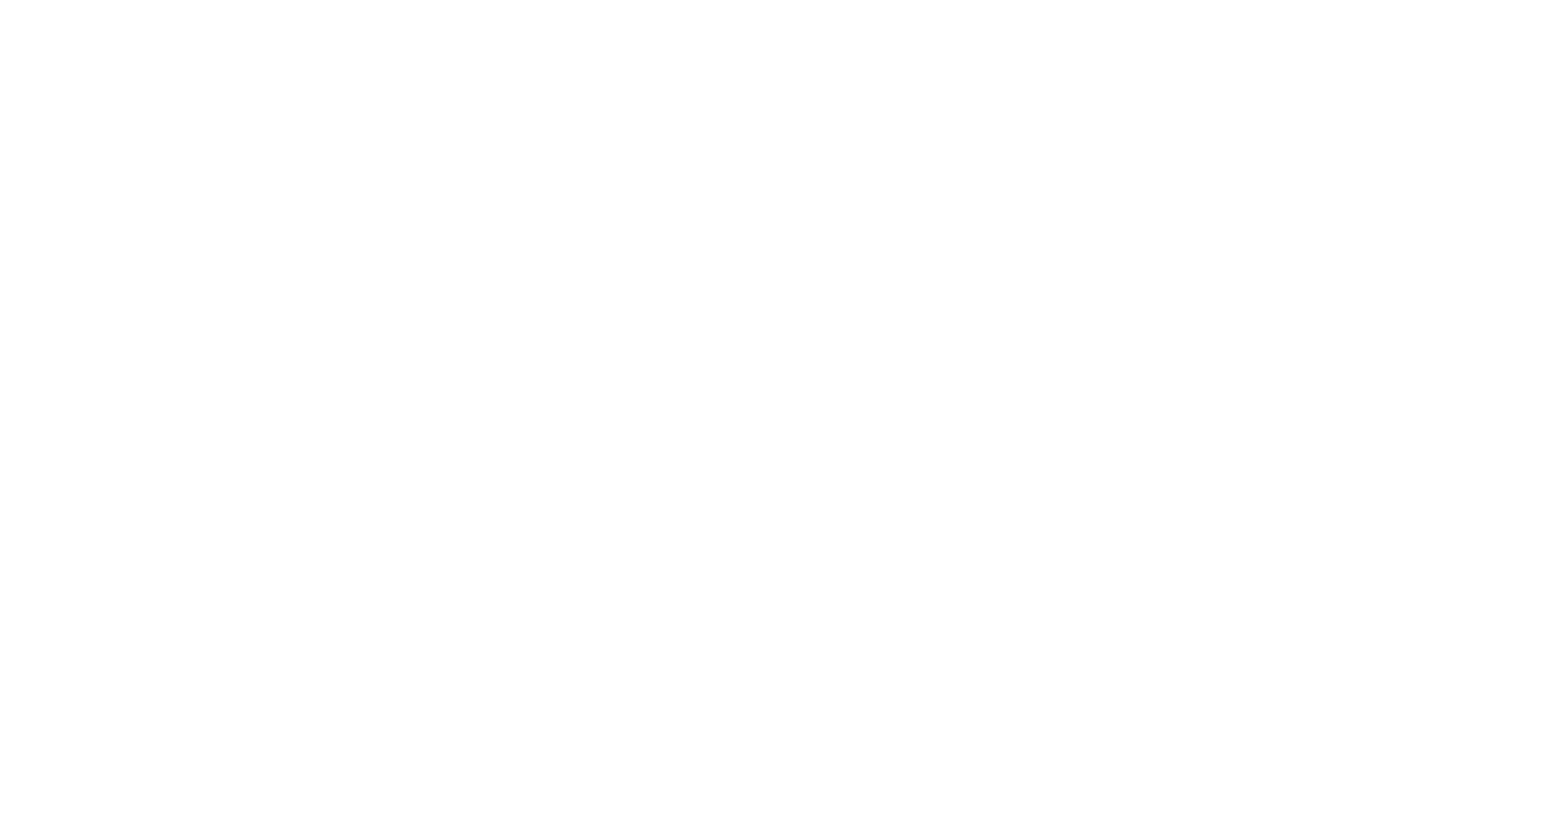 RADIANT Ritsumeikan University Research